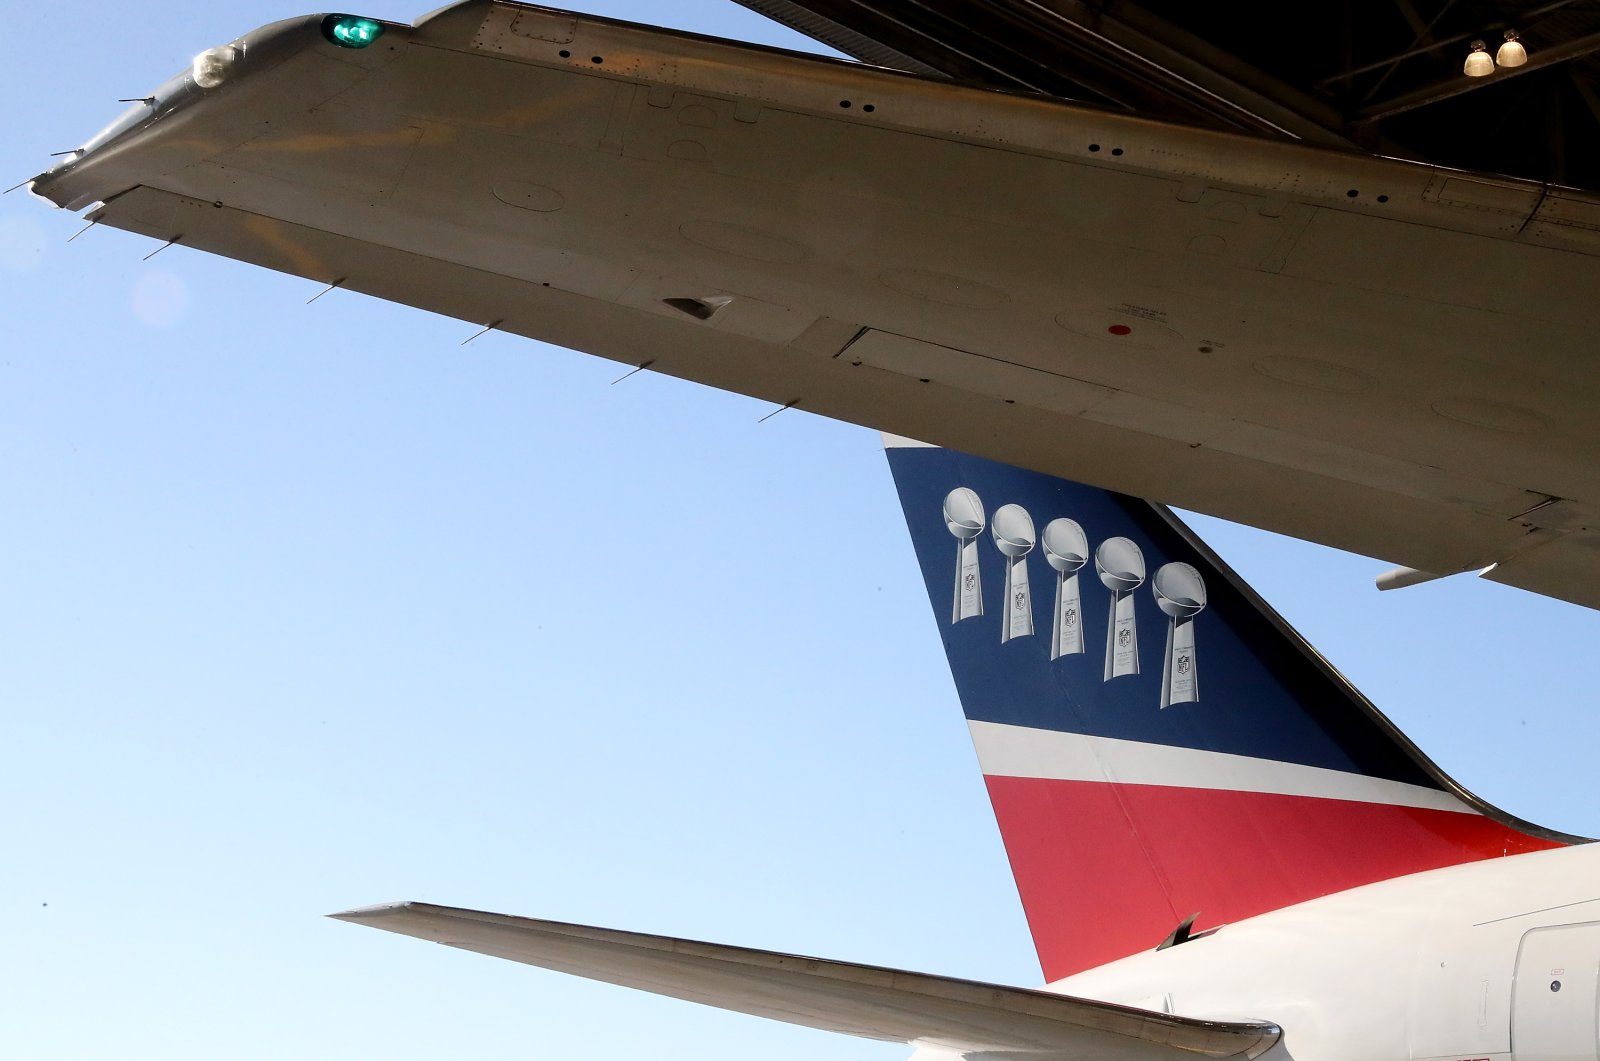 The tail of the New England Patriots plane as it arrives for Super Bowl LII at the Minneapolis-St. Paul International Airport in Minneapolis, Minnesota, Jan. 29, 2018. (AFP Photo)